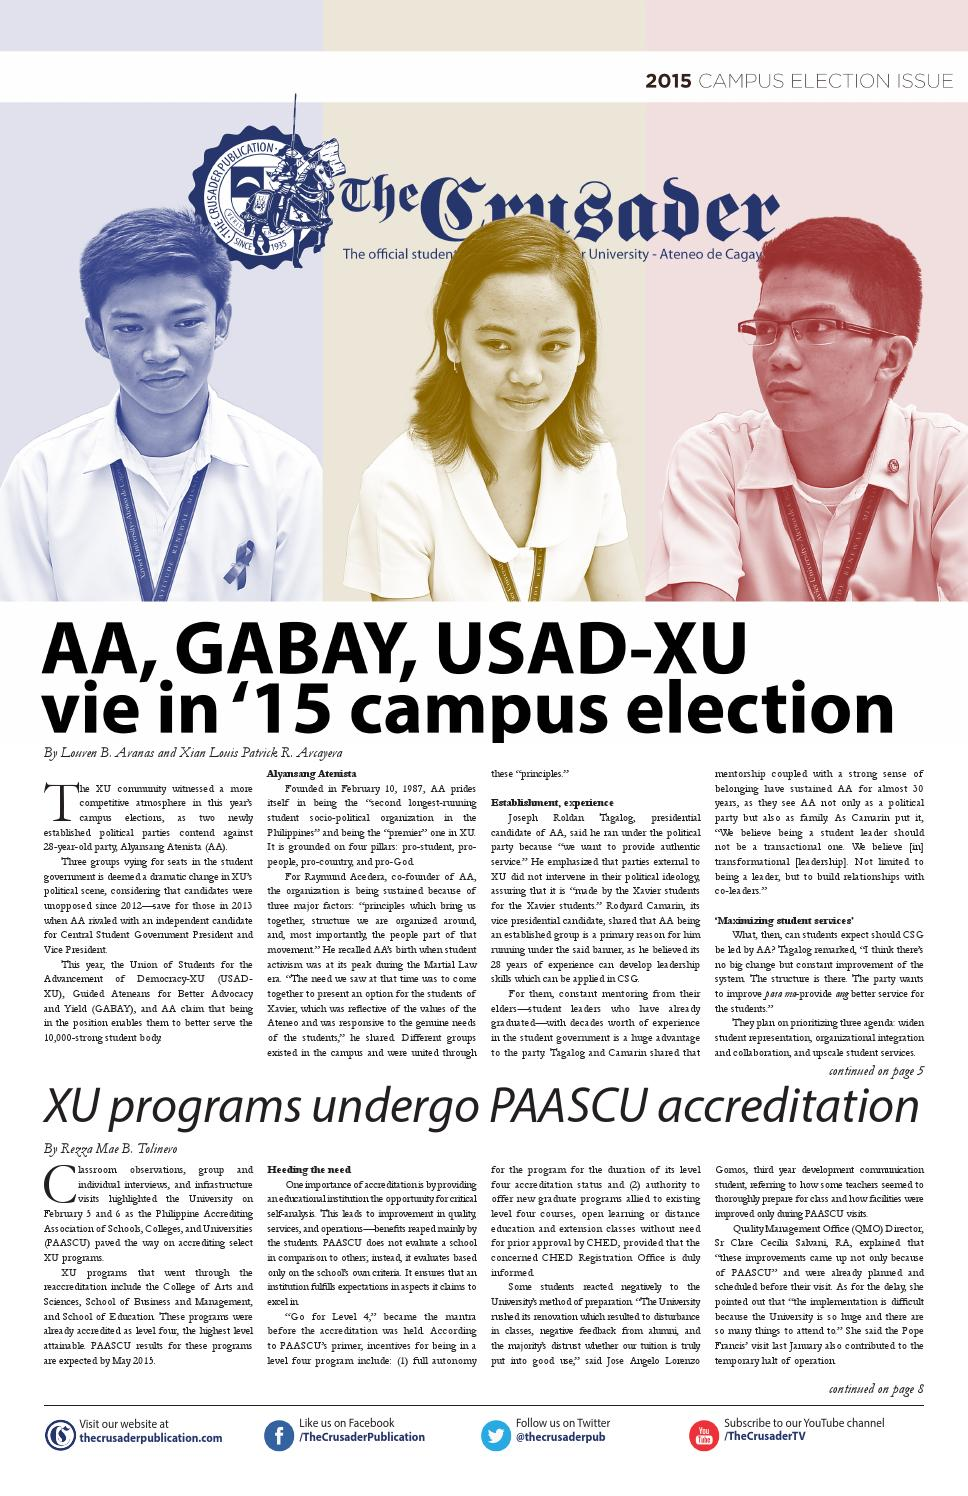 Thecrusader pre election tabloid 2015 by the crusader publication thecrusader pre election tabloid 2015 by the crusader publication issuu fandeluxe Image collections